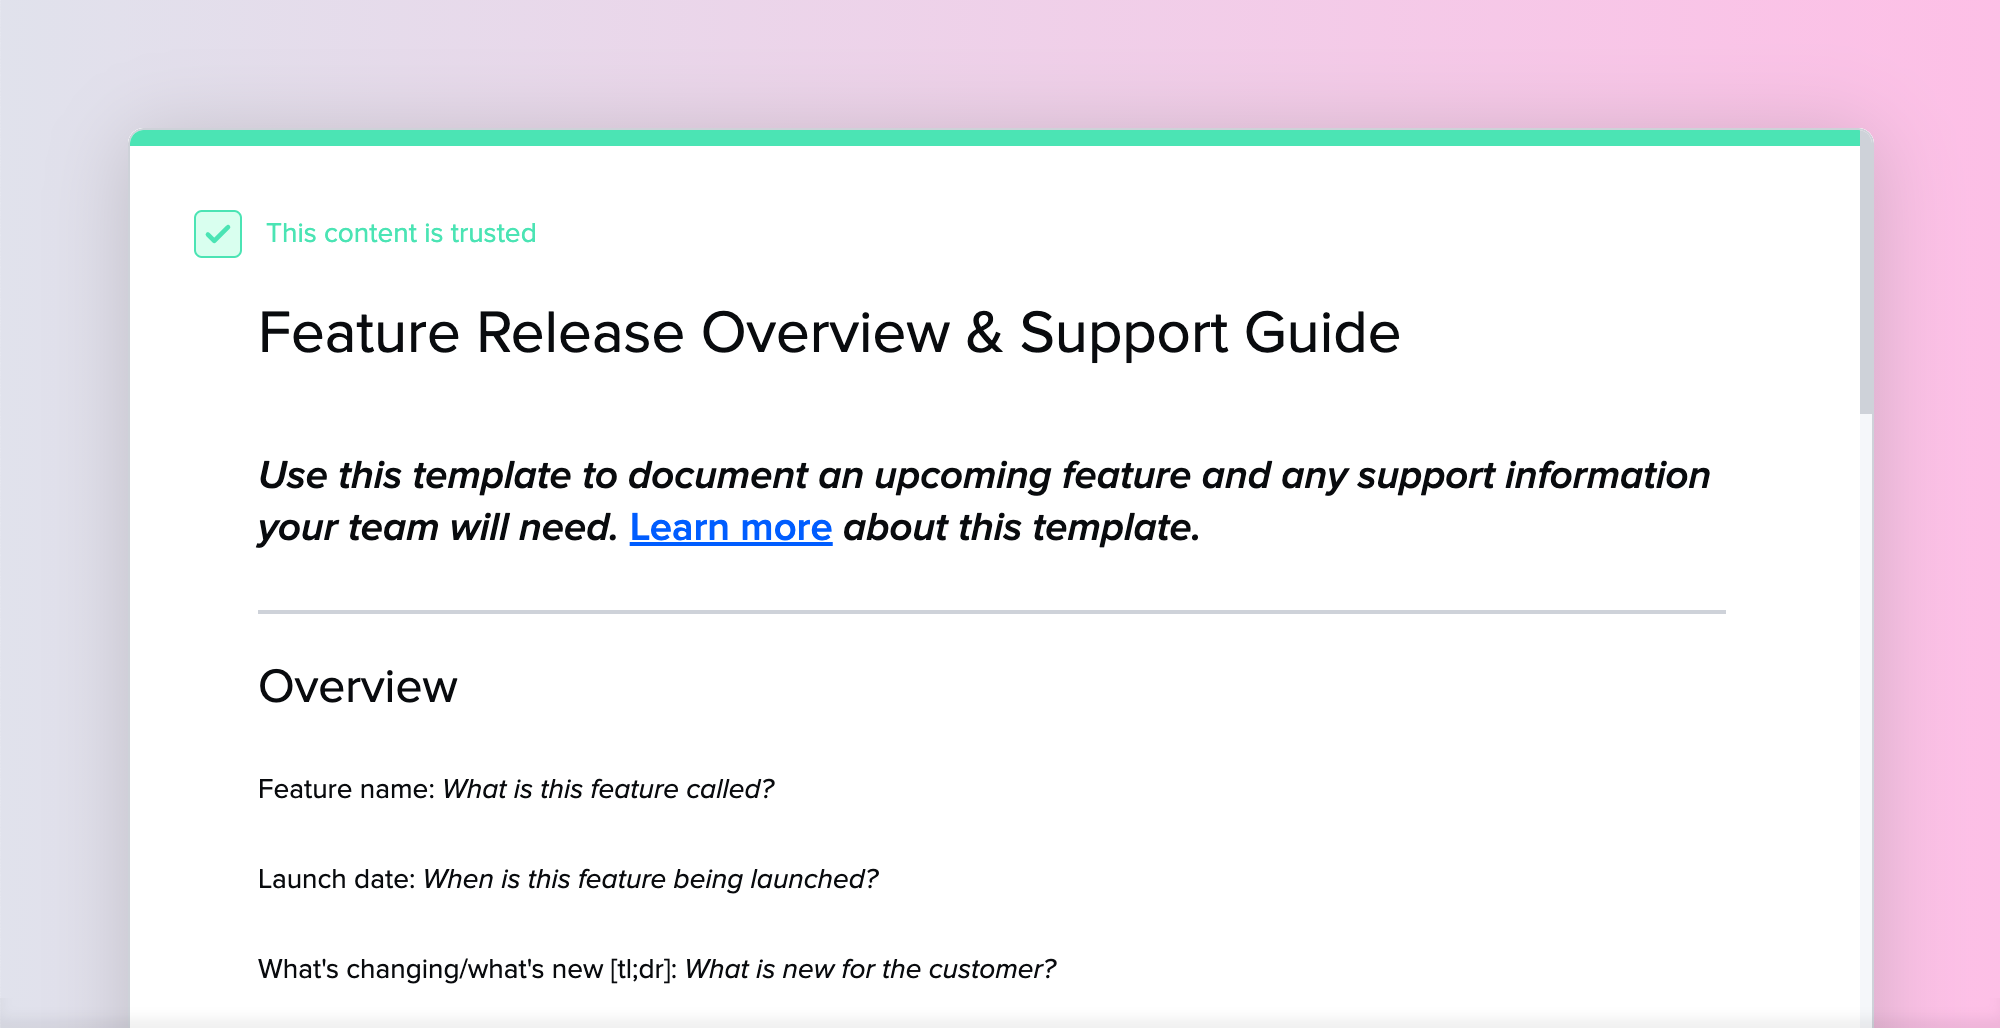 Feature Release Overview